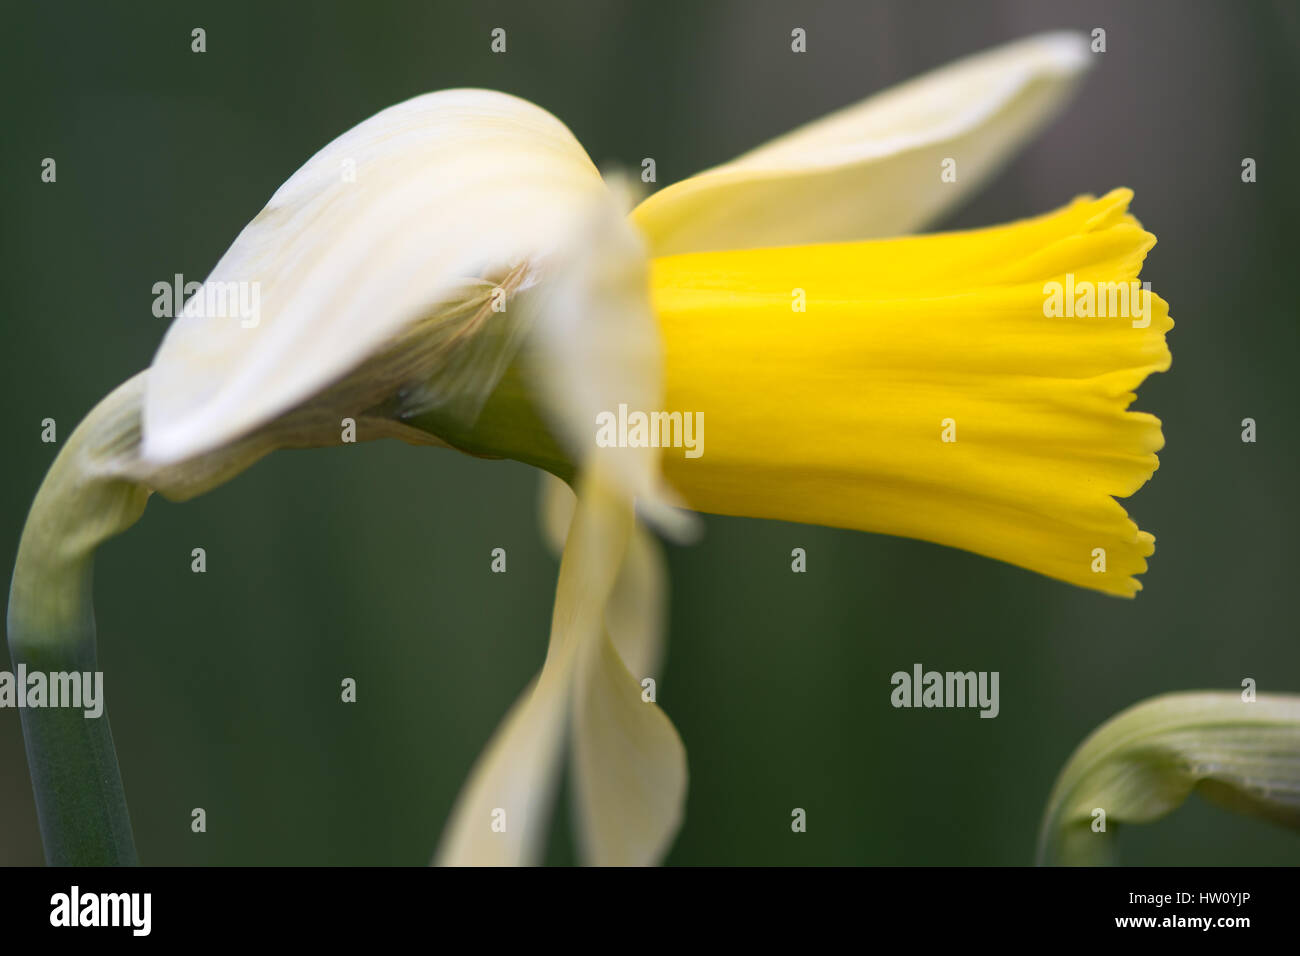 Daffodil Narcissus February Silver flower. Yellow and white flower of spring perennial plant in the Amaryllidaceae - Stock Image